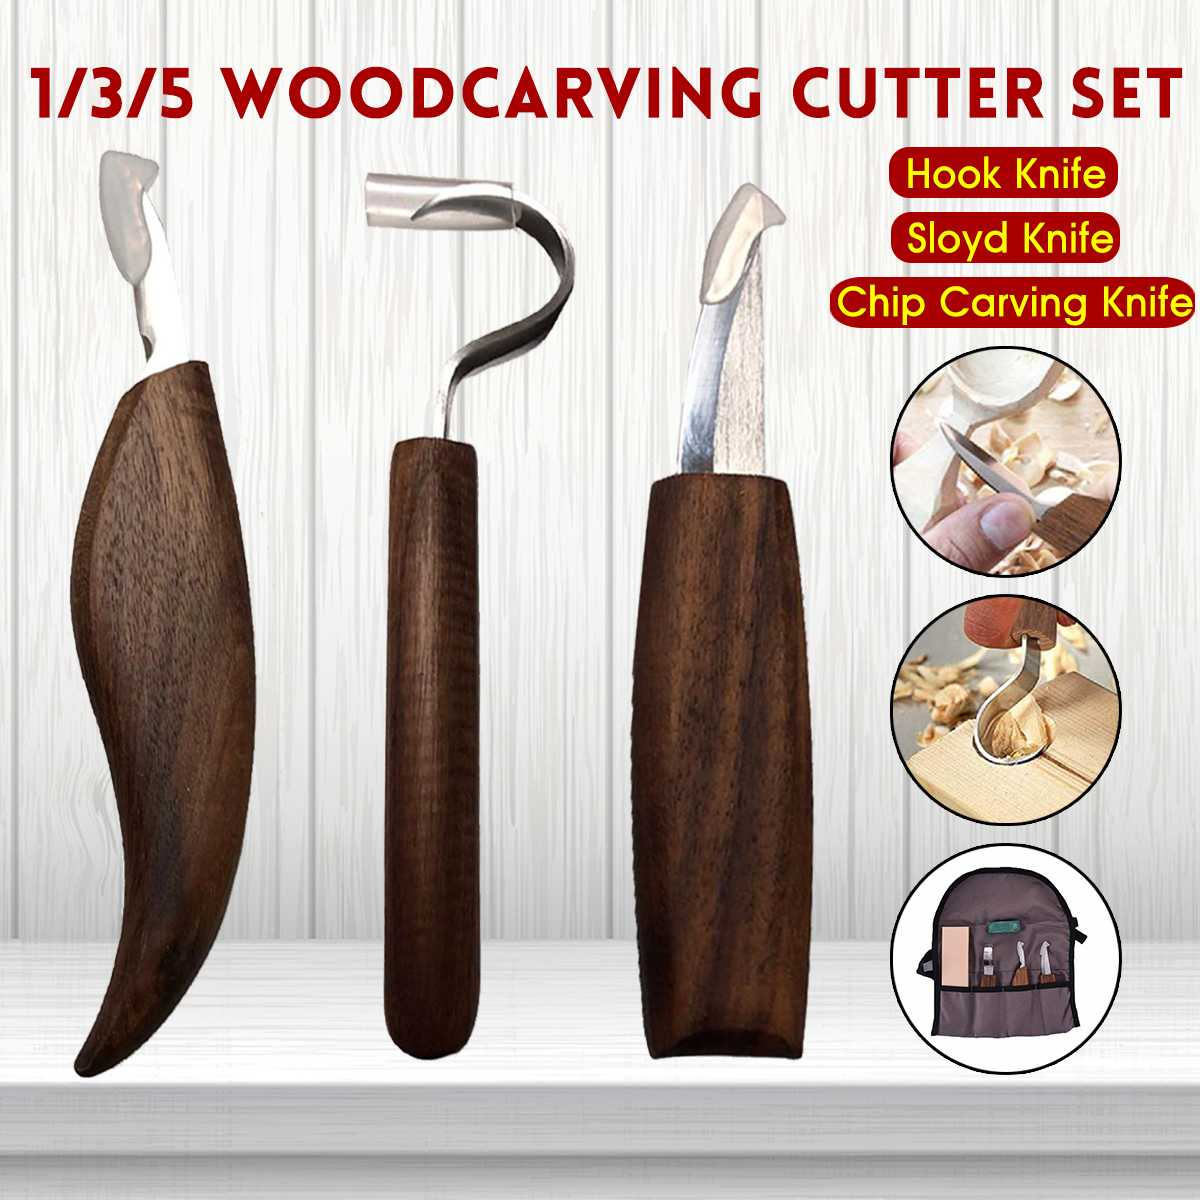 Newest 1/3/5Pcs Wood Carving Knife Chisel Woodworking Cutter Hand Tool Set Peeling Woodcarving Sculptural Spoon Carving Cutter